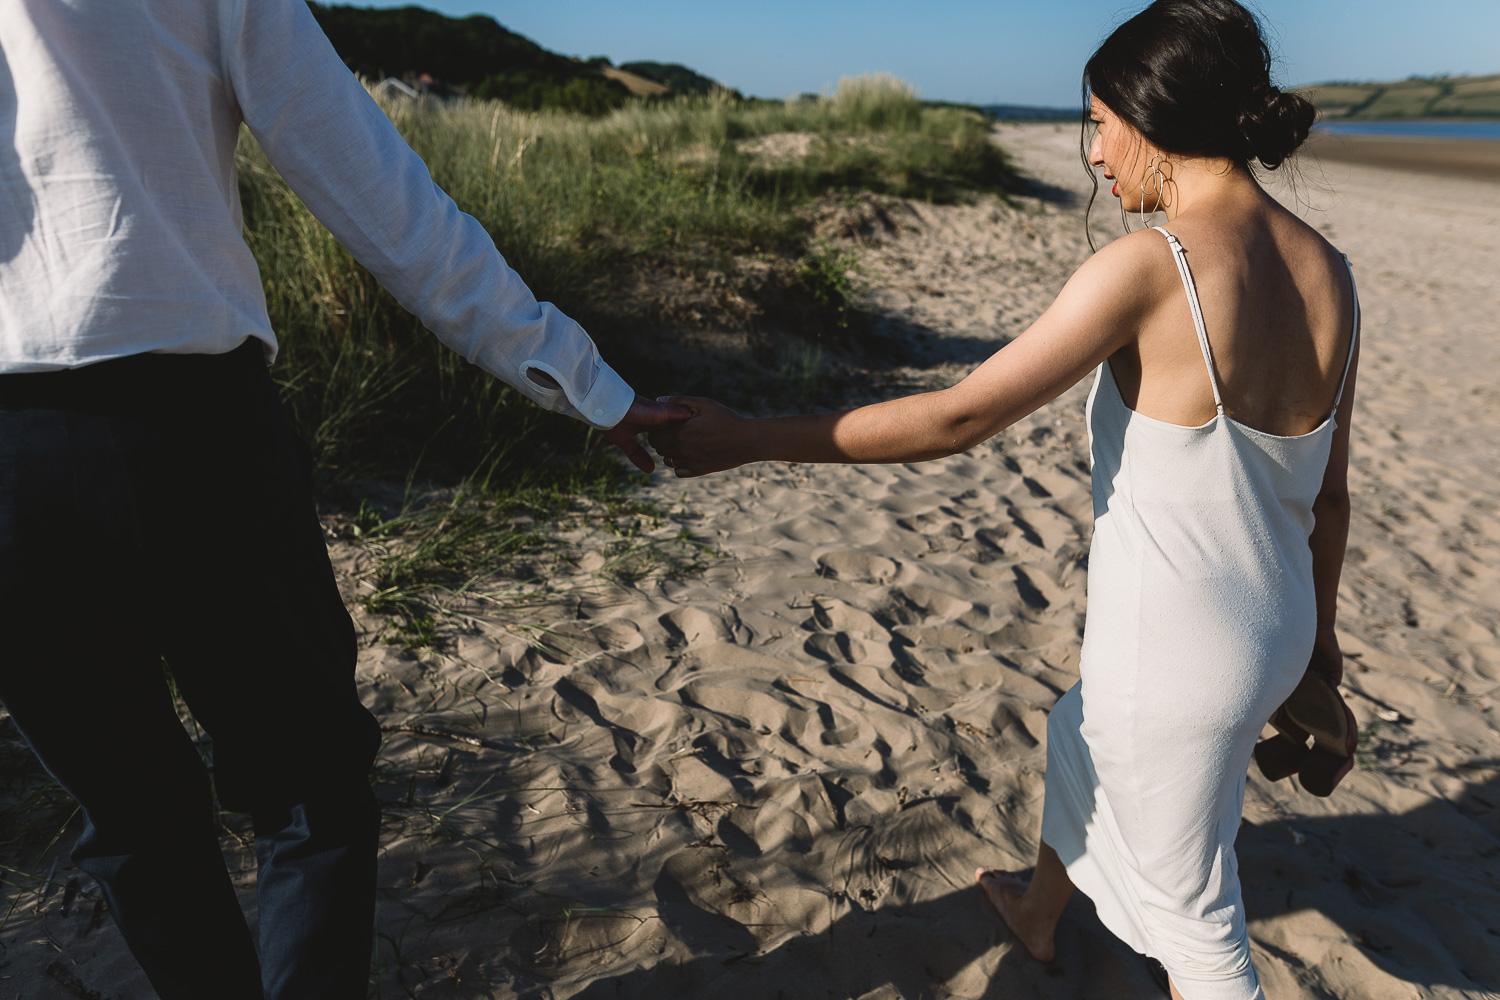 Bride and Groom in casual and simple wedding attire hand in hand walking along a sandy beach in Wales